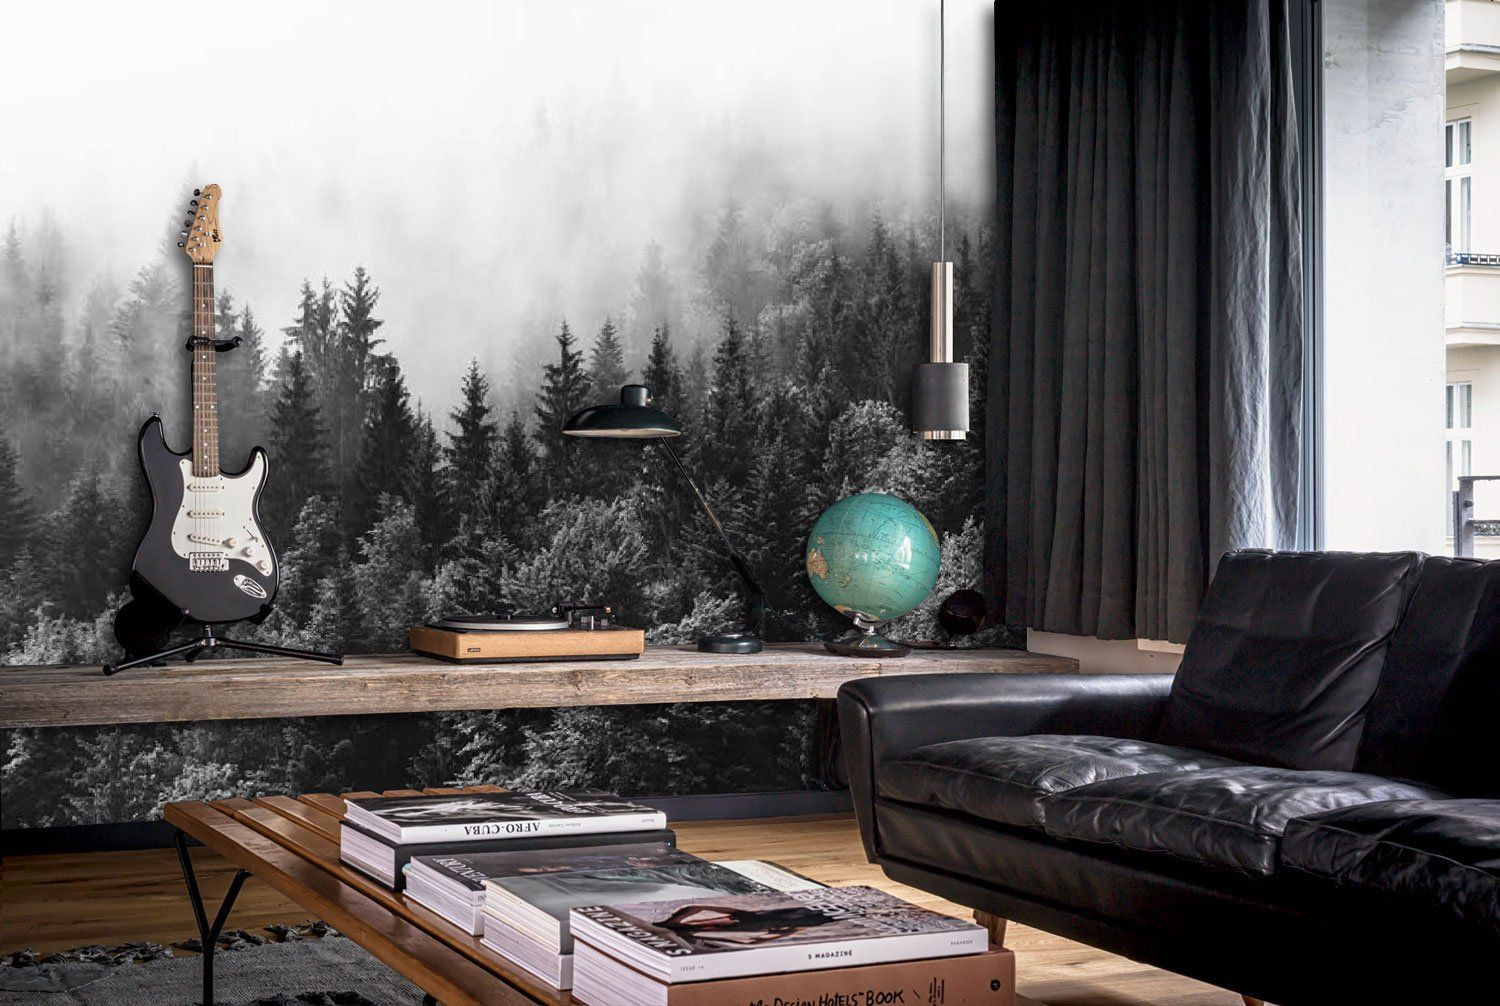 Through the Clouds, Monochrome Misty Forest scene mural